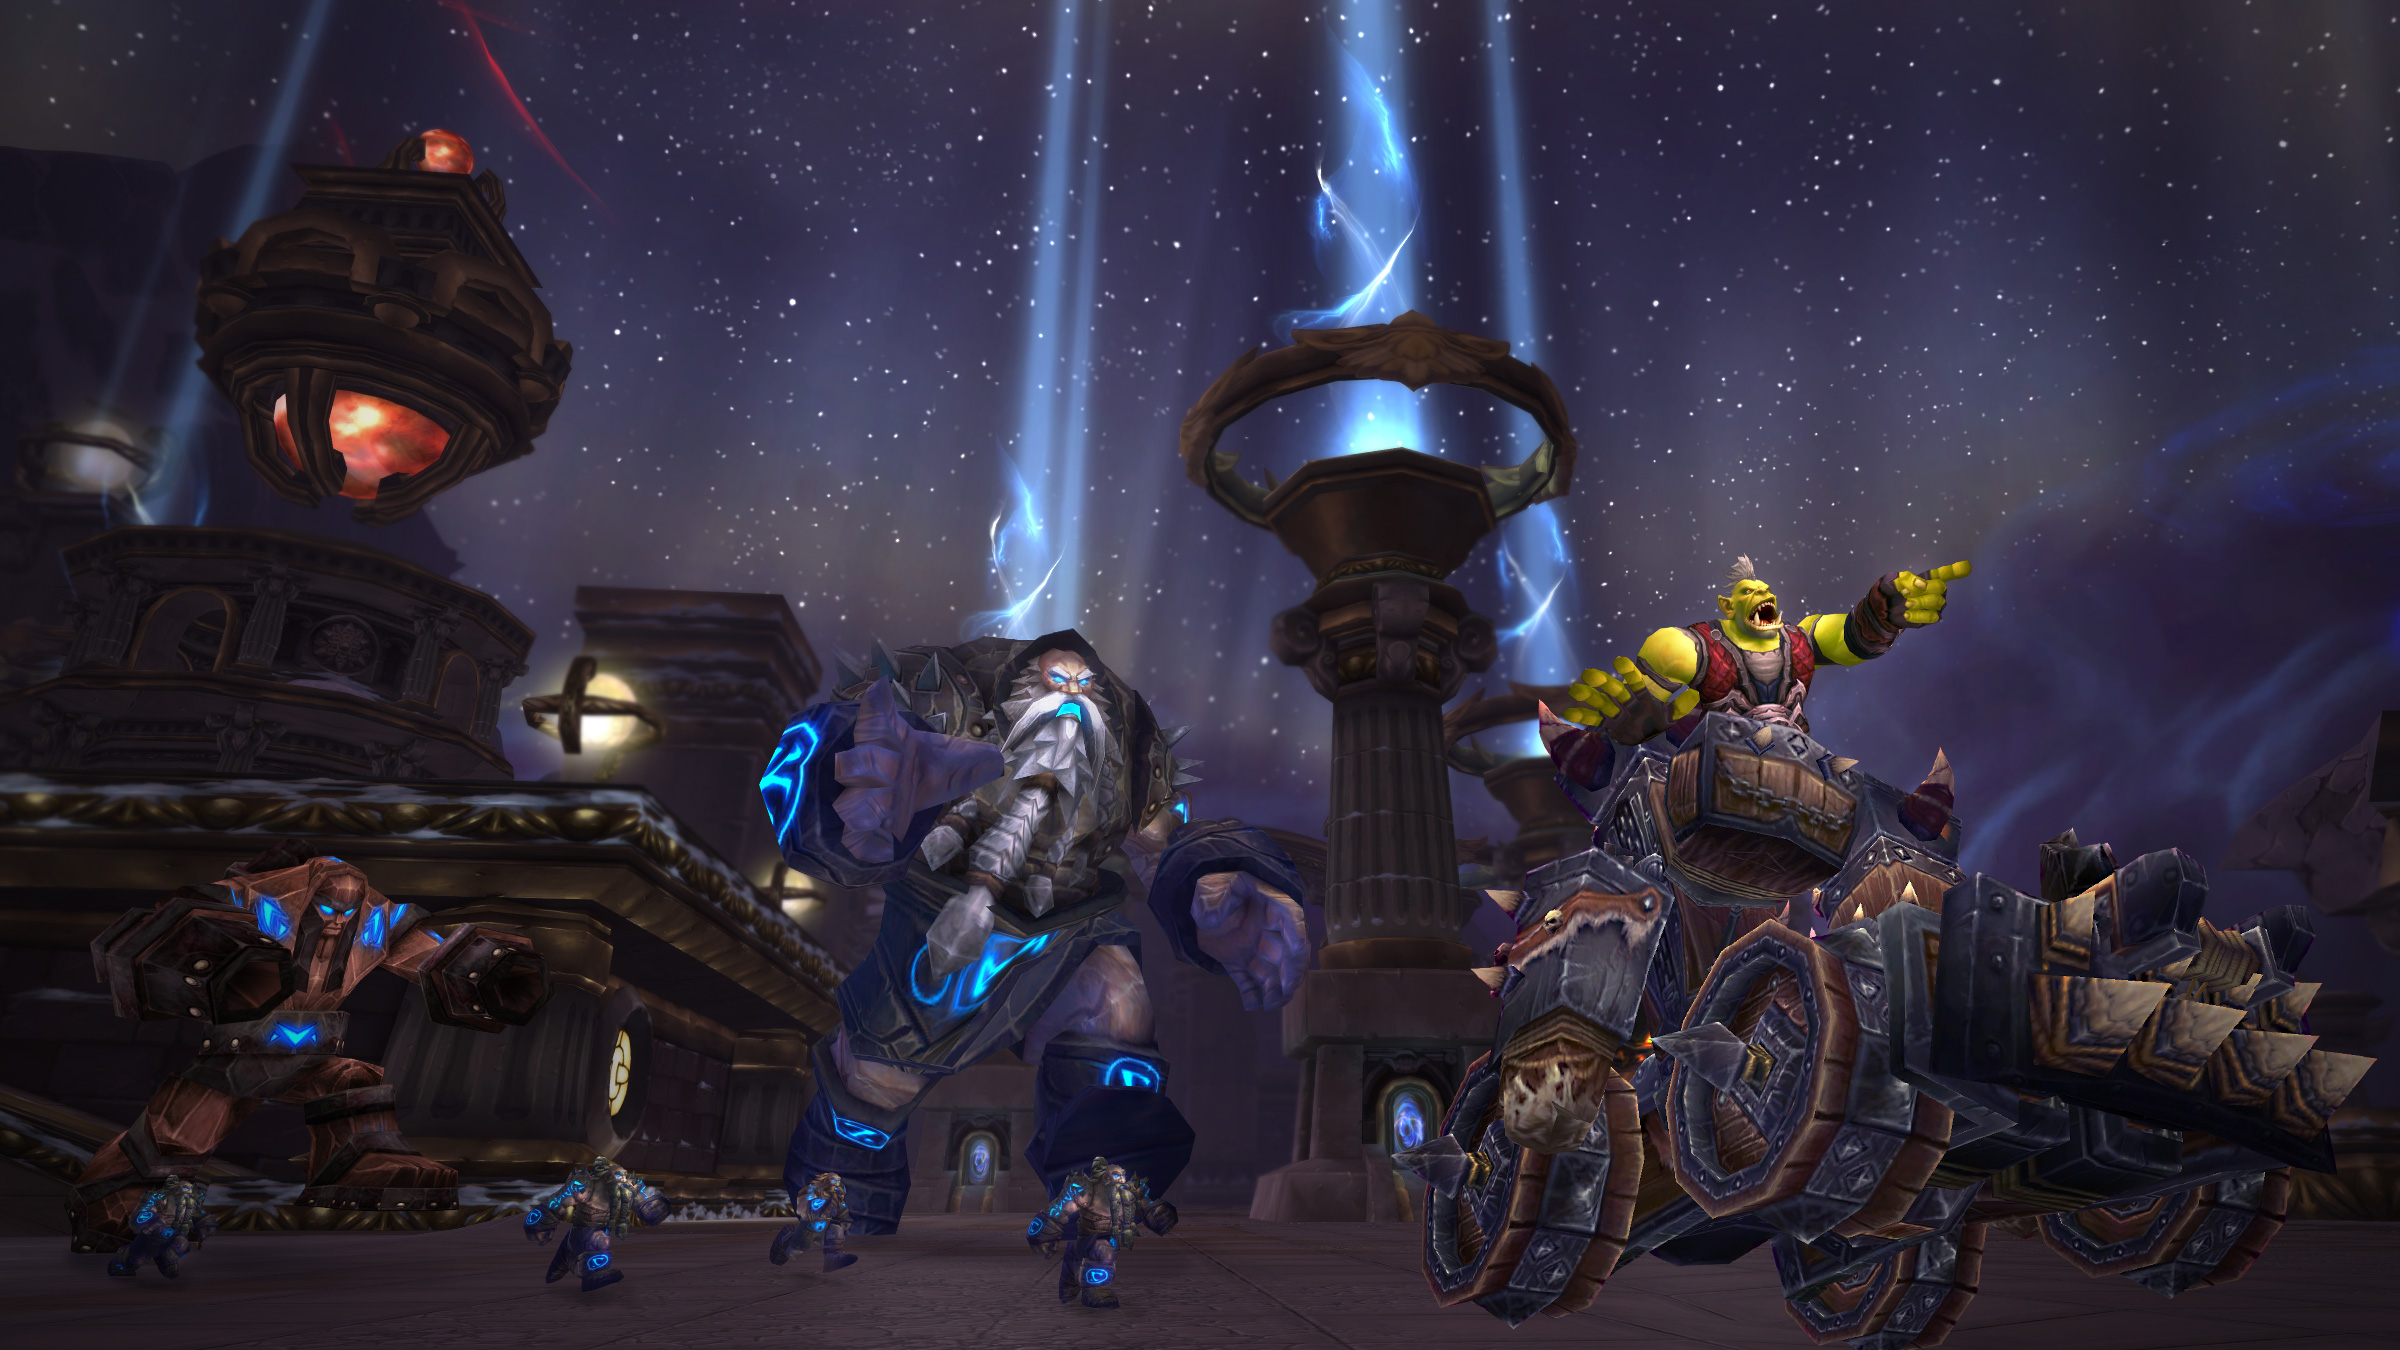 Du 13 au 19 mars, revisitez les donjons de Wrath of the Lich King